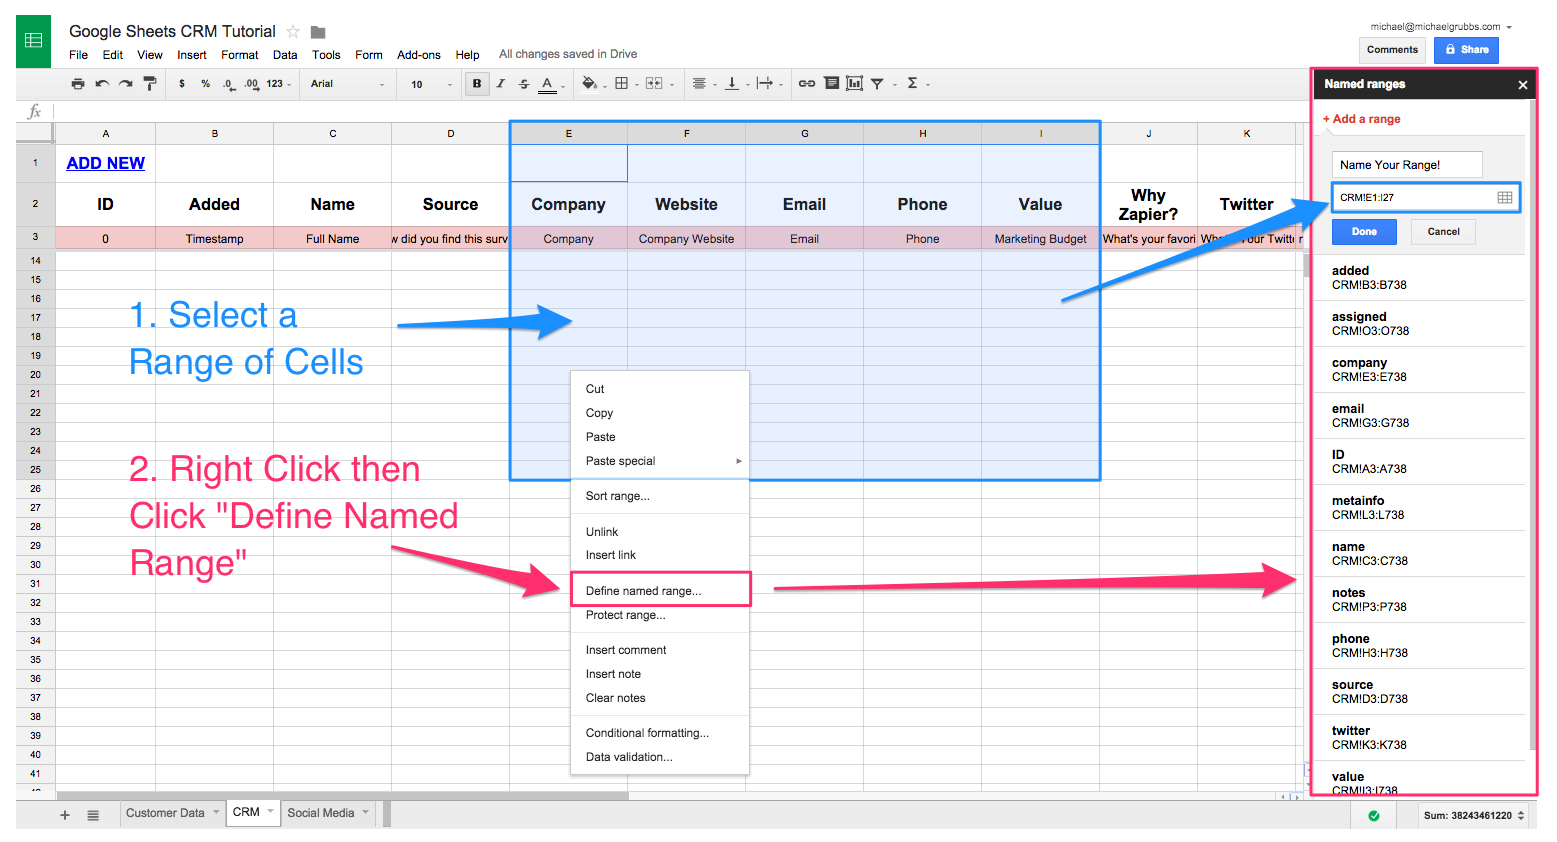 Management Spreadsheets For Spreadsheet Crm: How To Create A Customizable Crm With Google Sheets